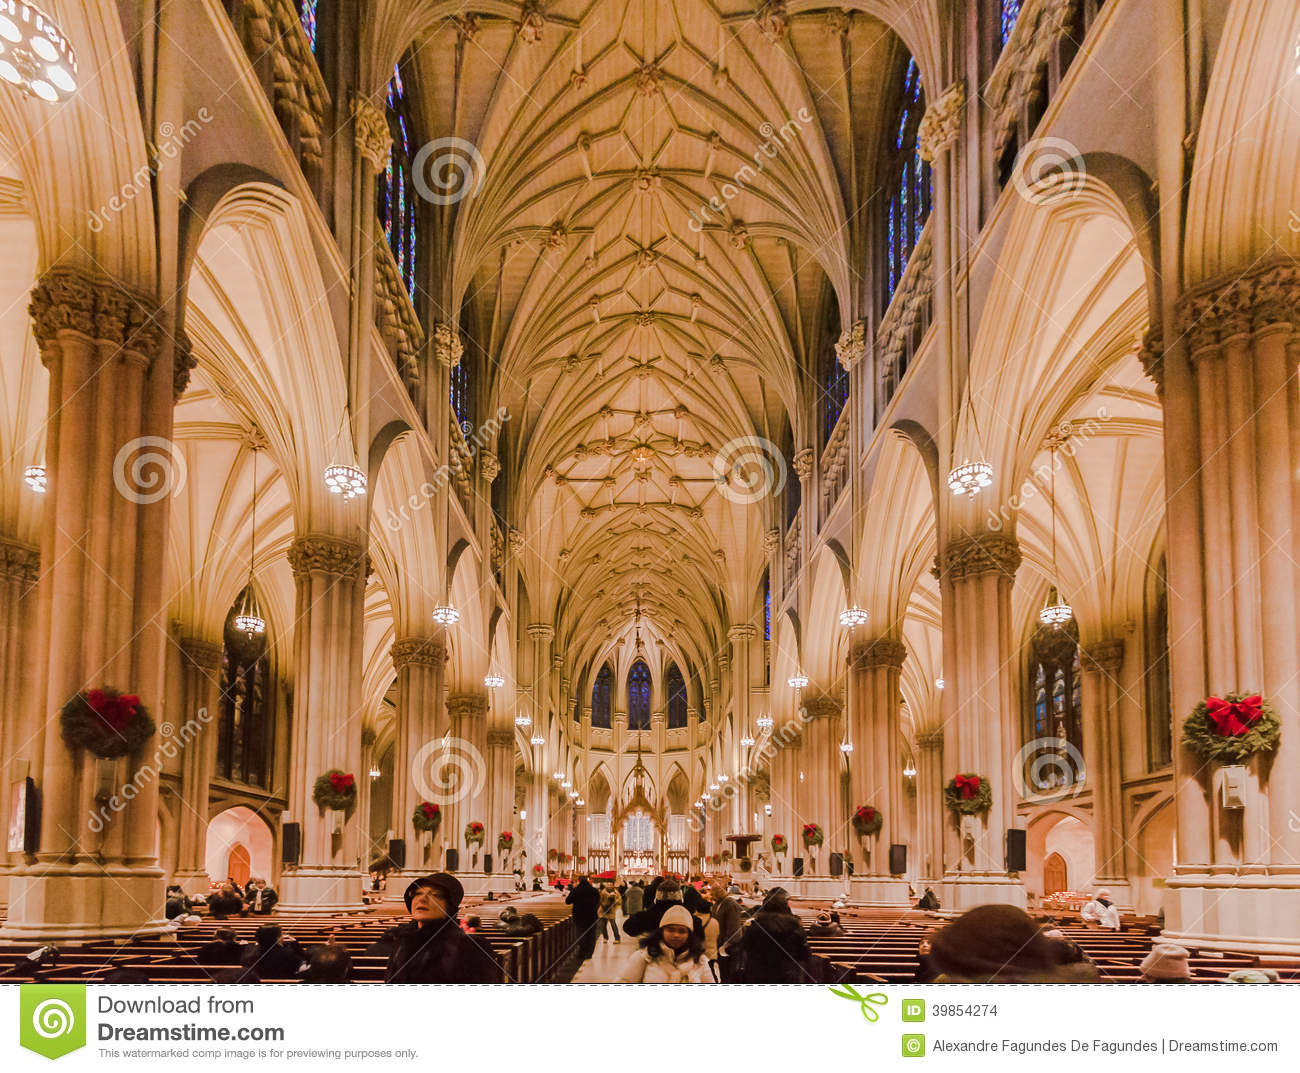 Lovely Long Island City Church #2: Saint-patrick-cathedral-new-york-city-main-nave-its-long-columns-arches-fifth-avenue-manhattan-island-united-39854274.jpg